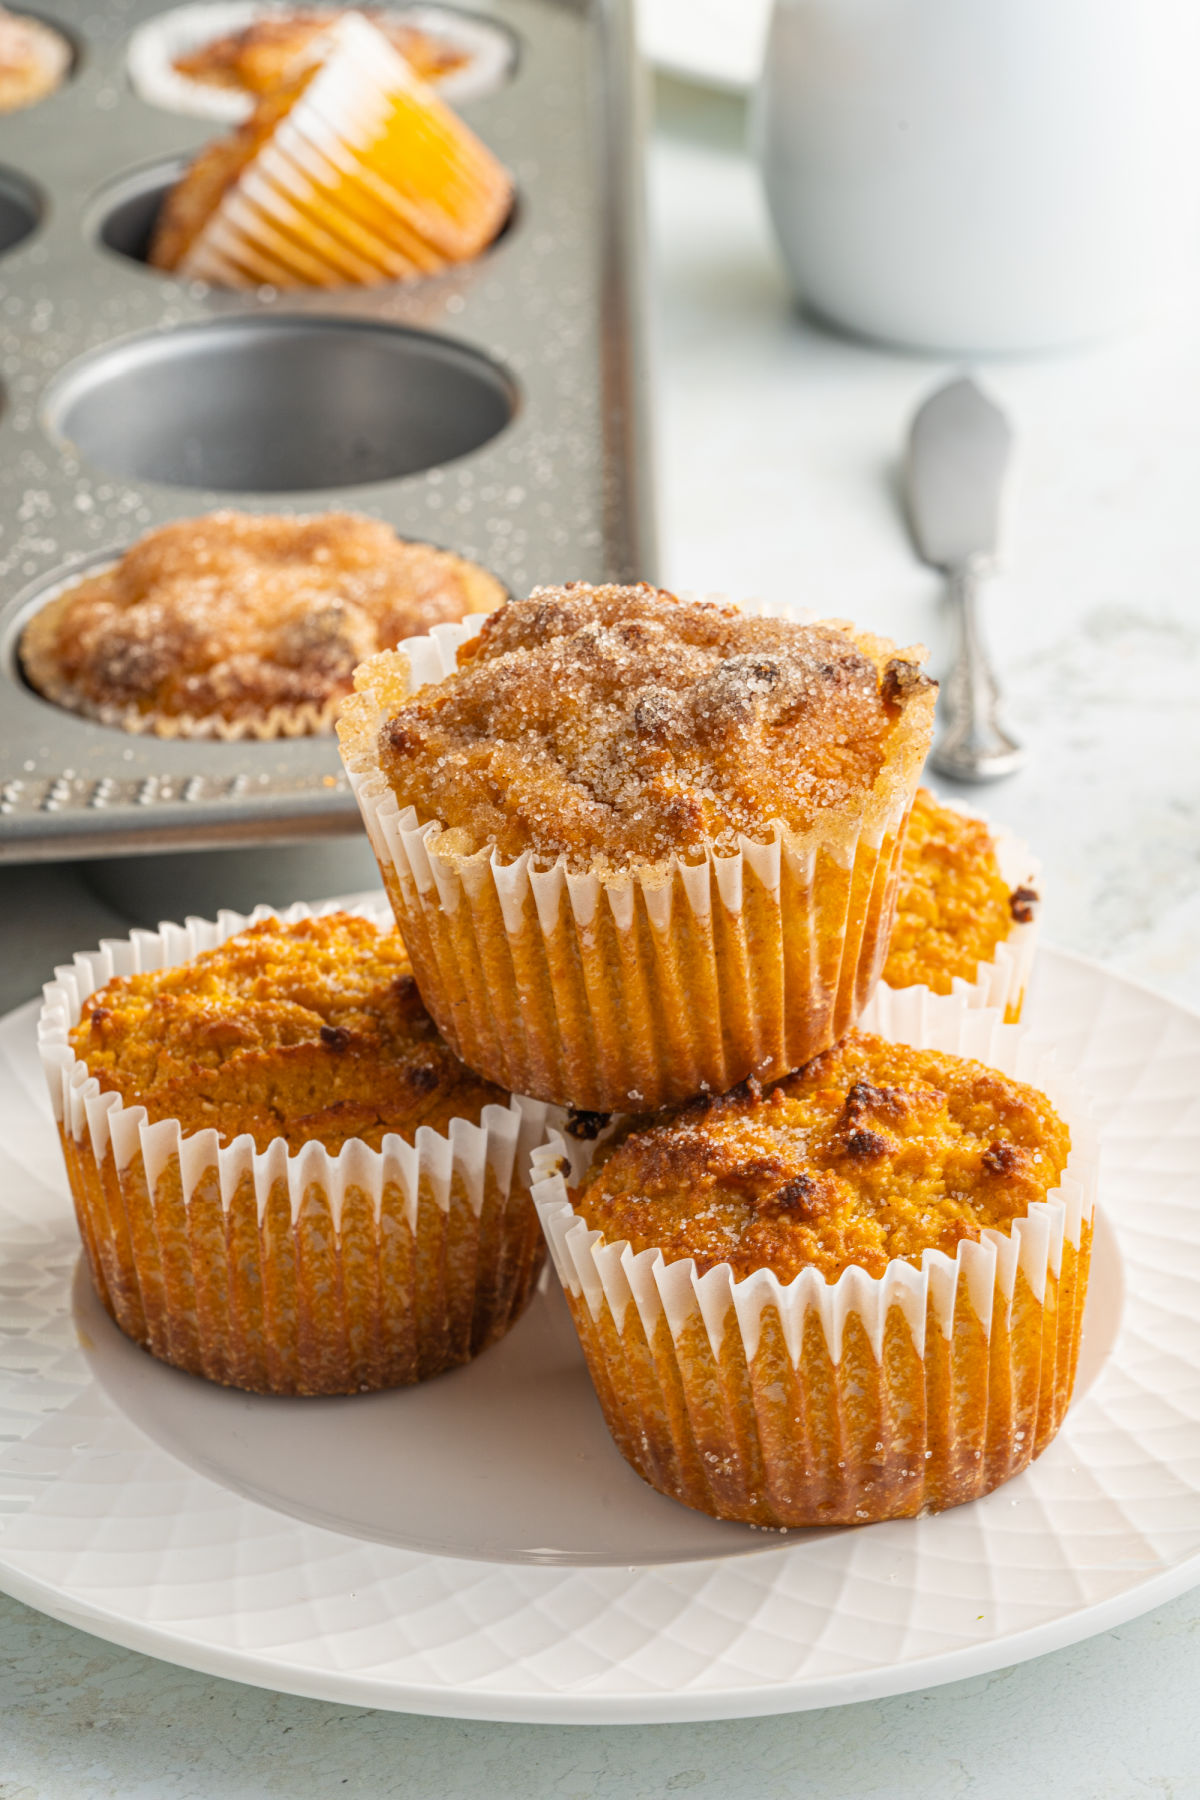 Stack of three pumpkin muffins in white wrappers.